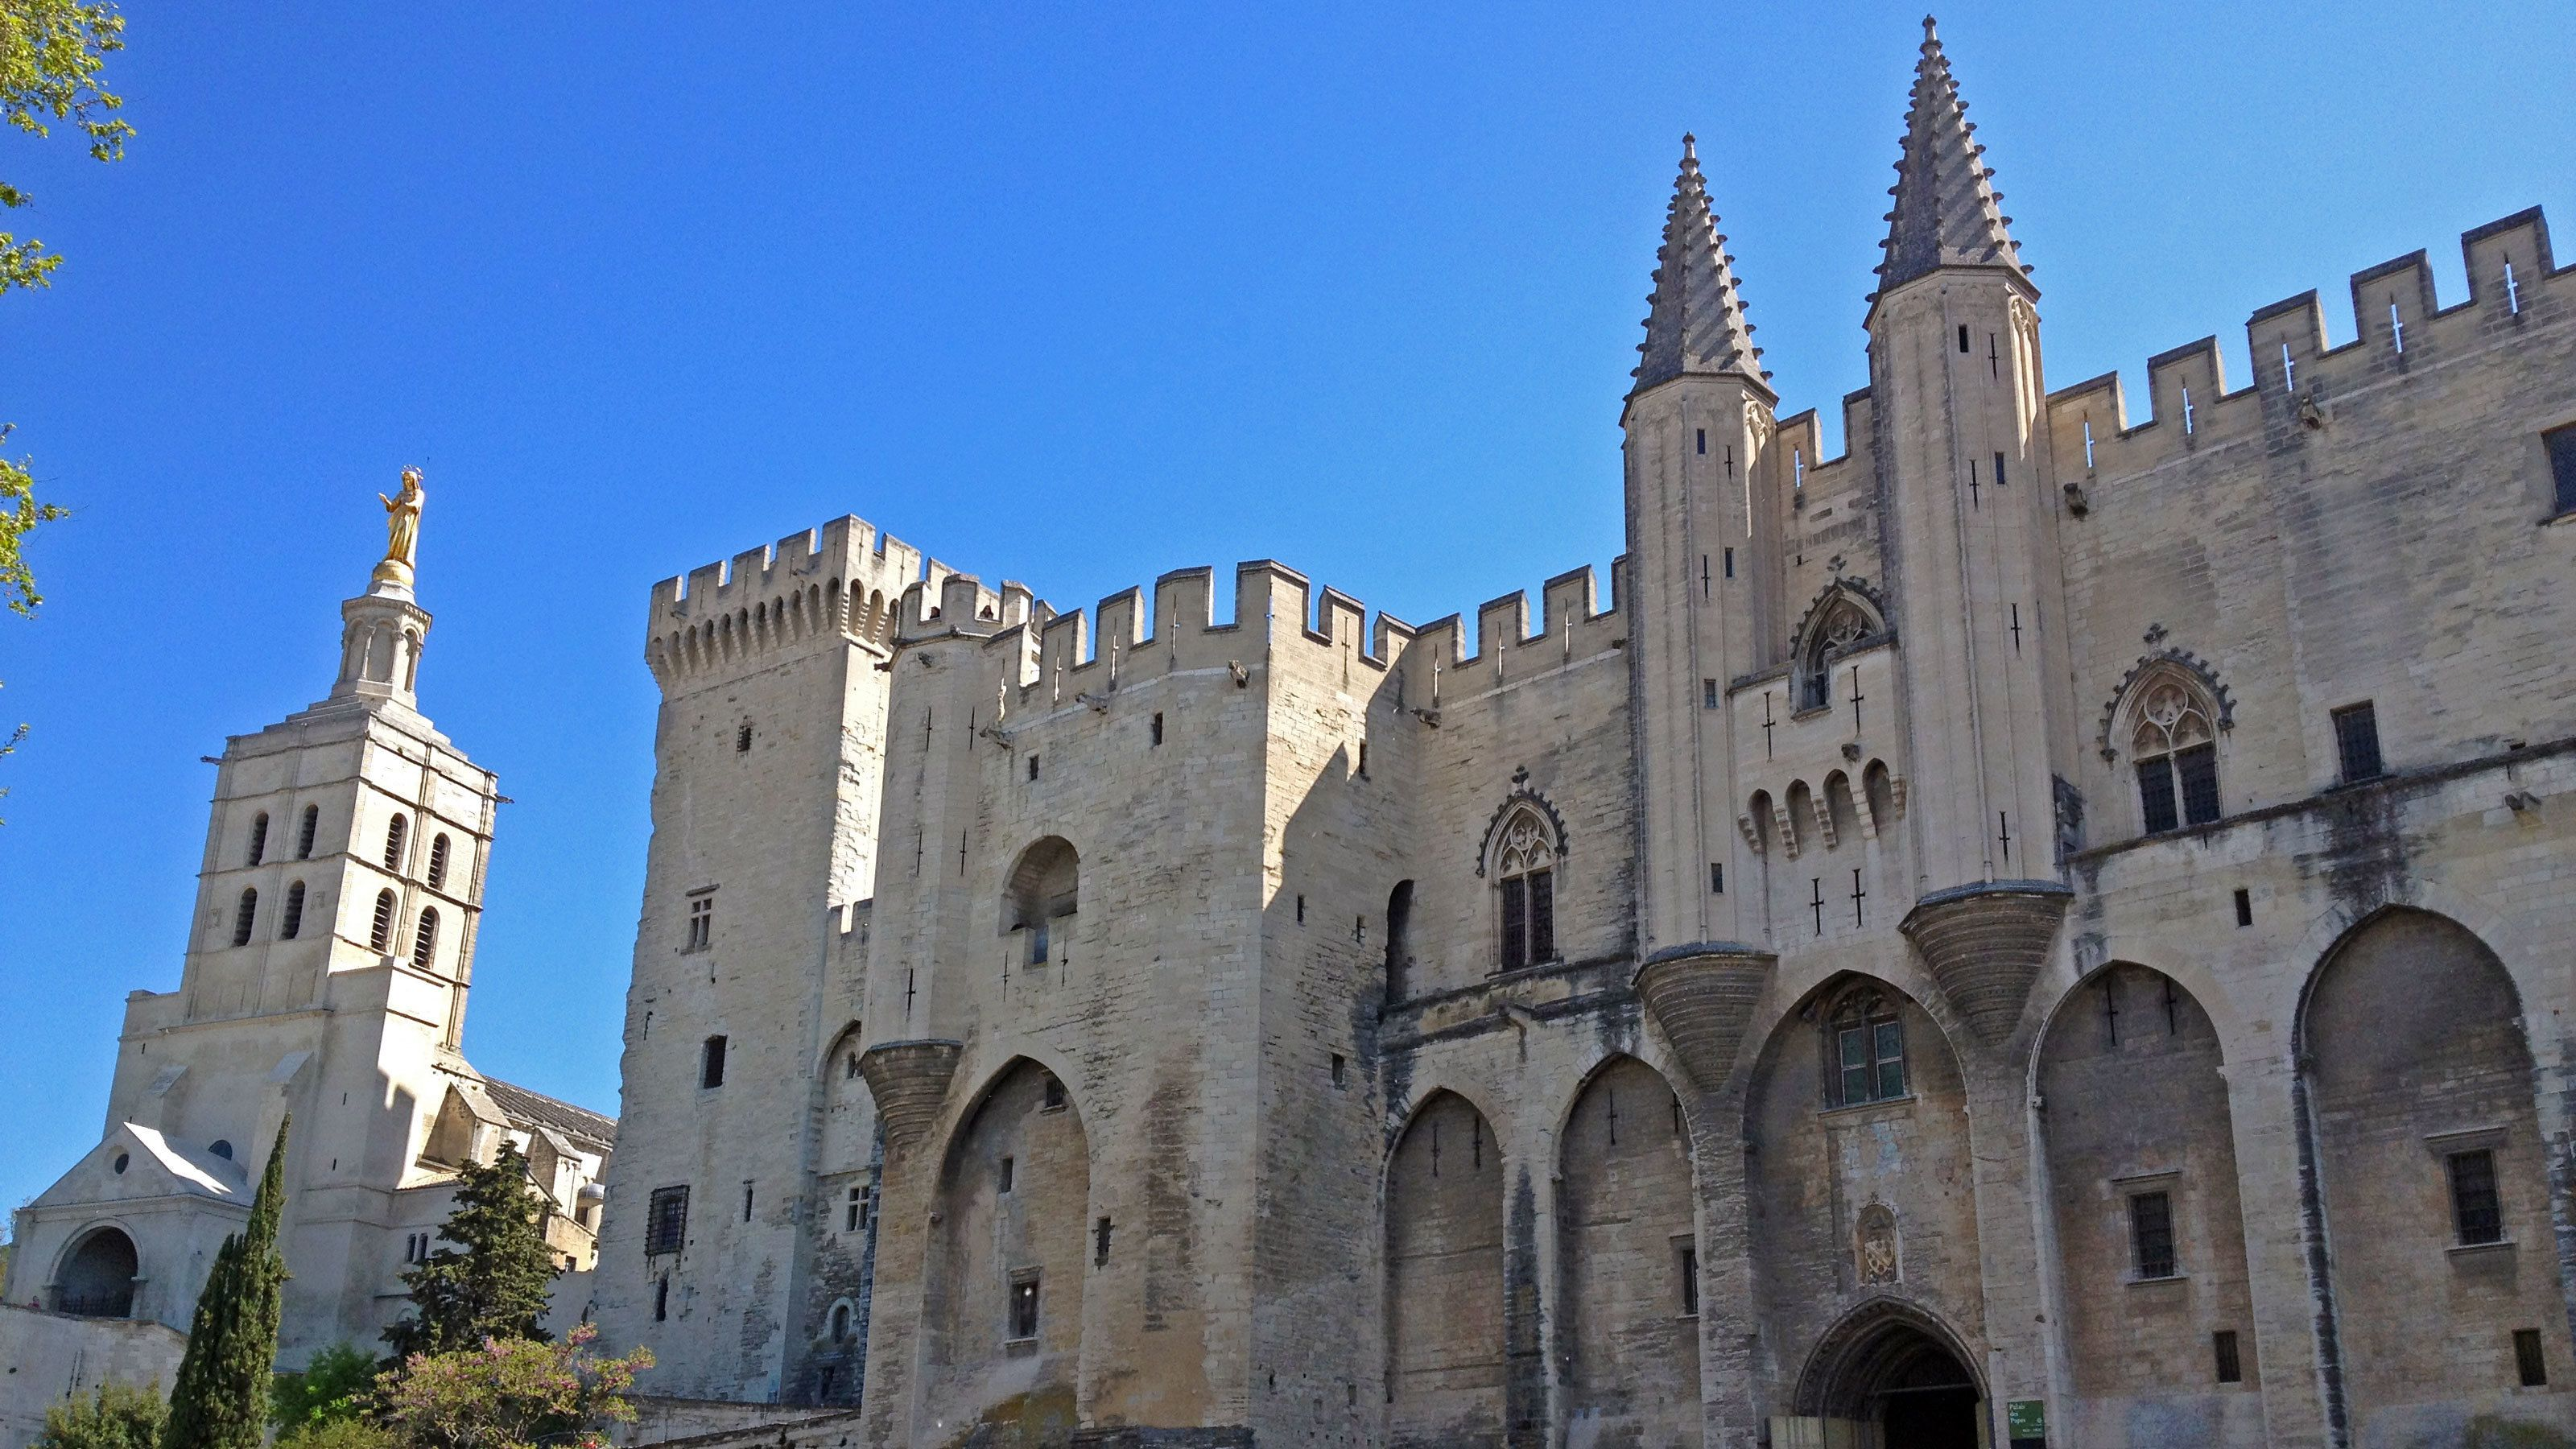 Medieval Gothic structure of Palais des Papes in Avignon